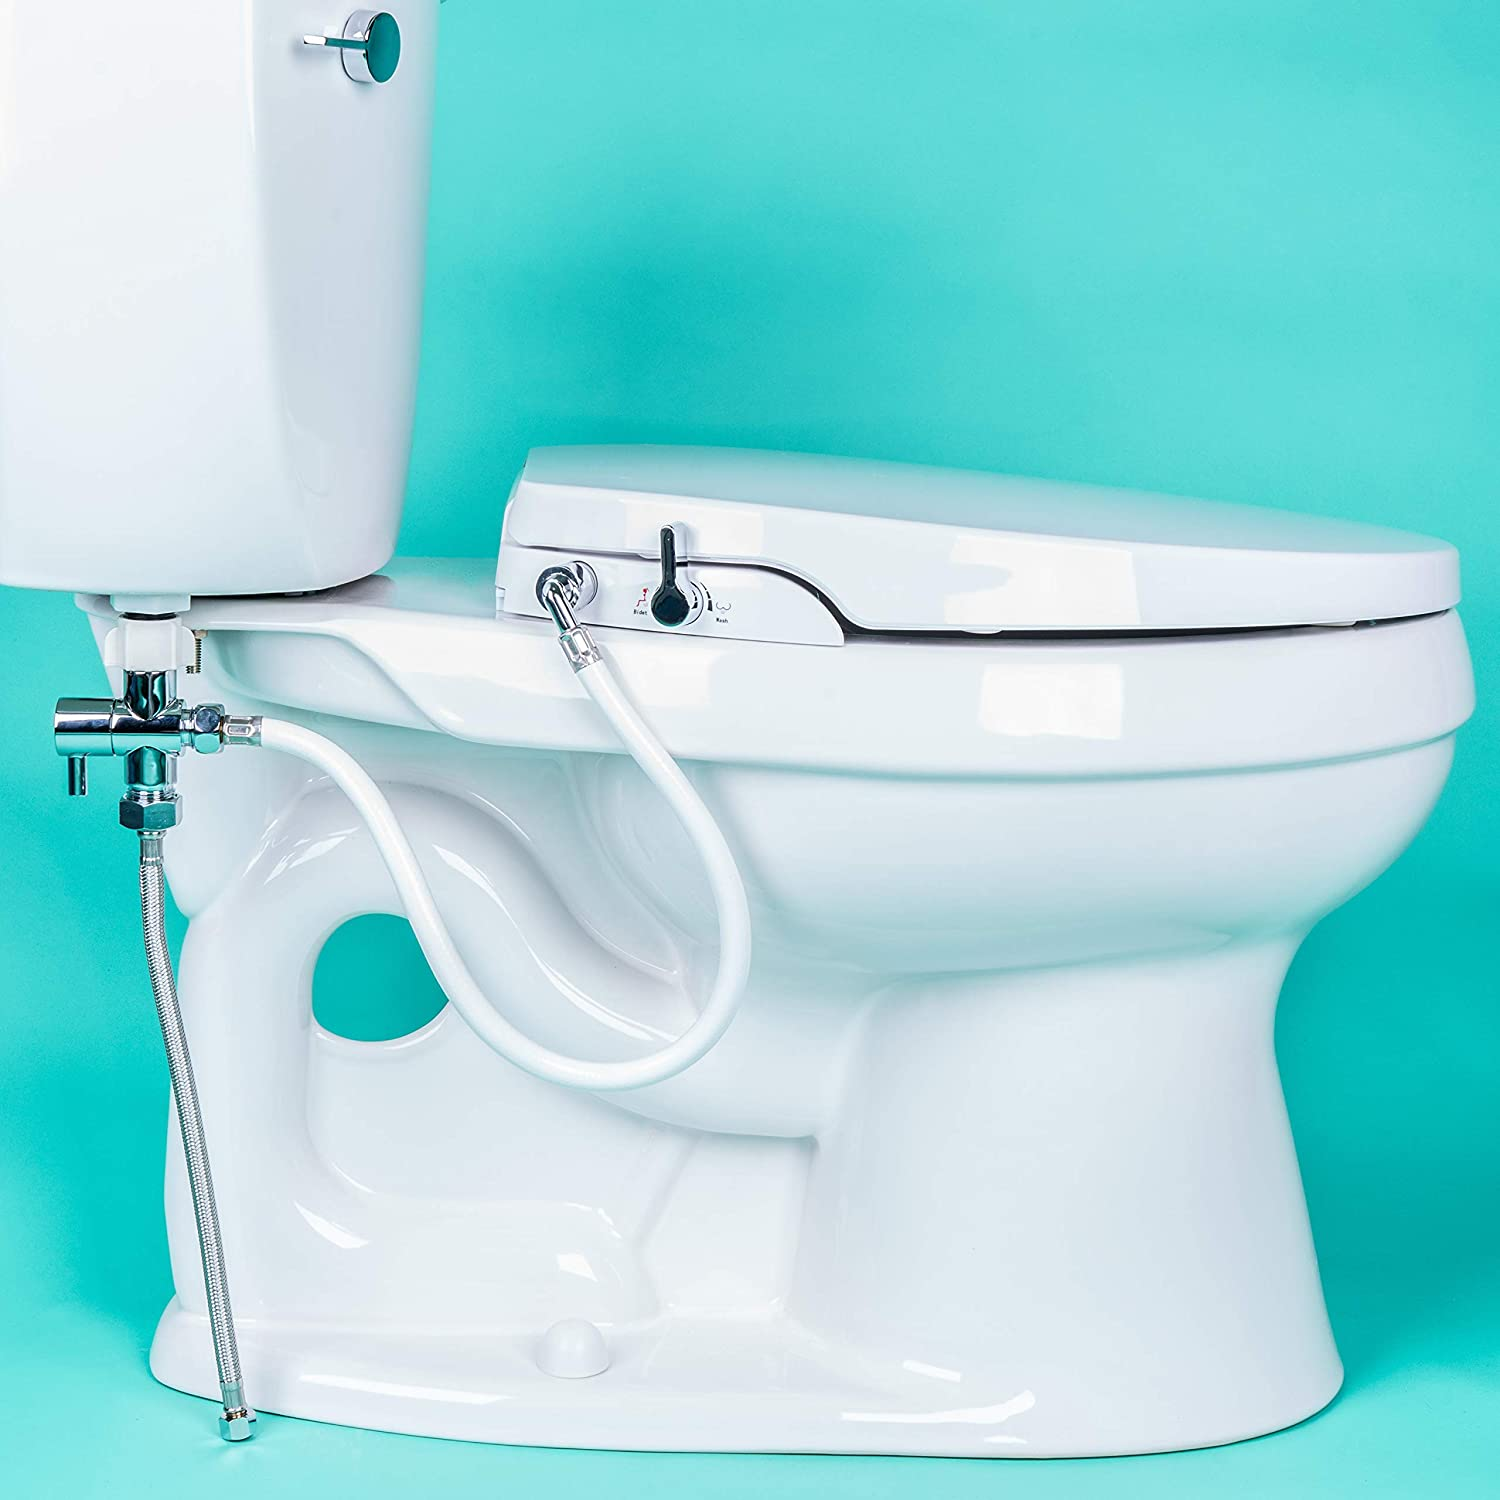 Top 5 Best Bidet Toilet Seats Reviews in 2020 2